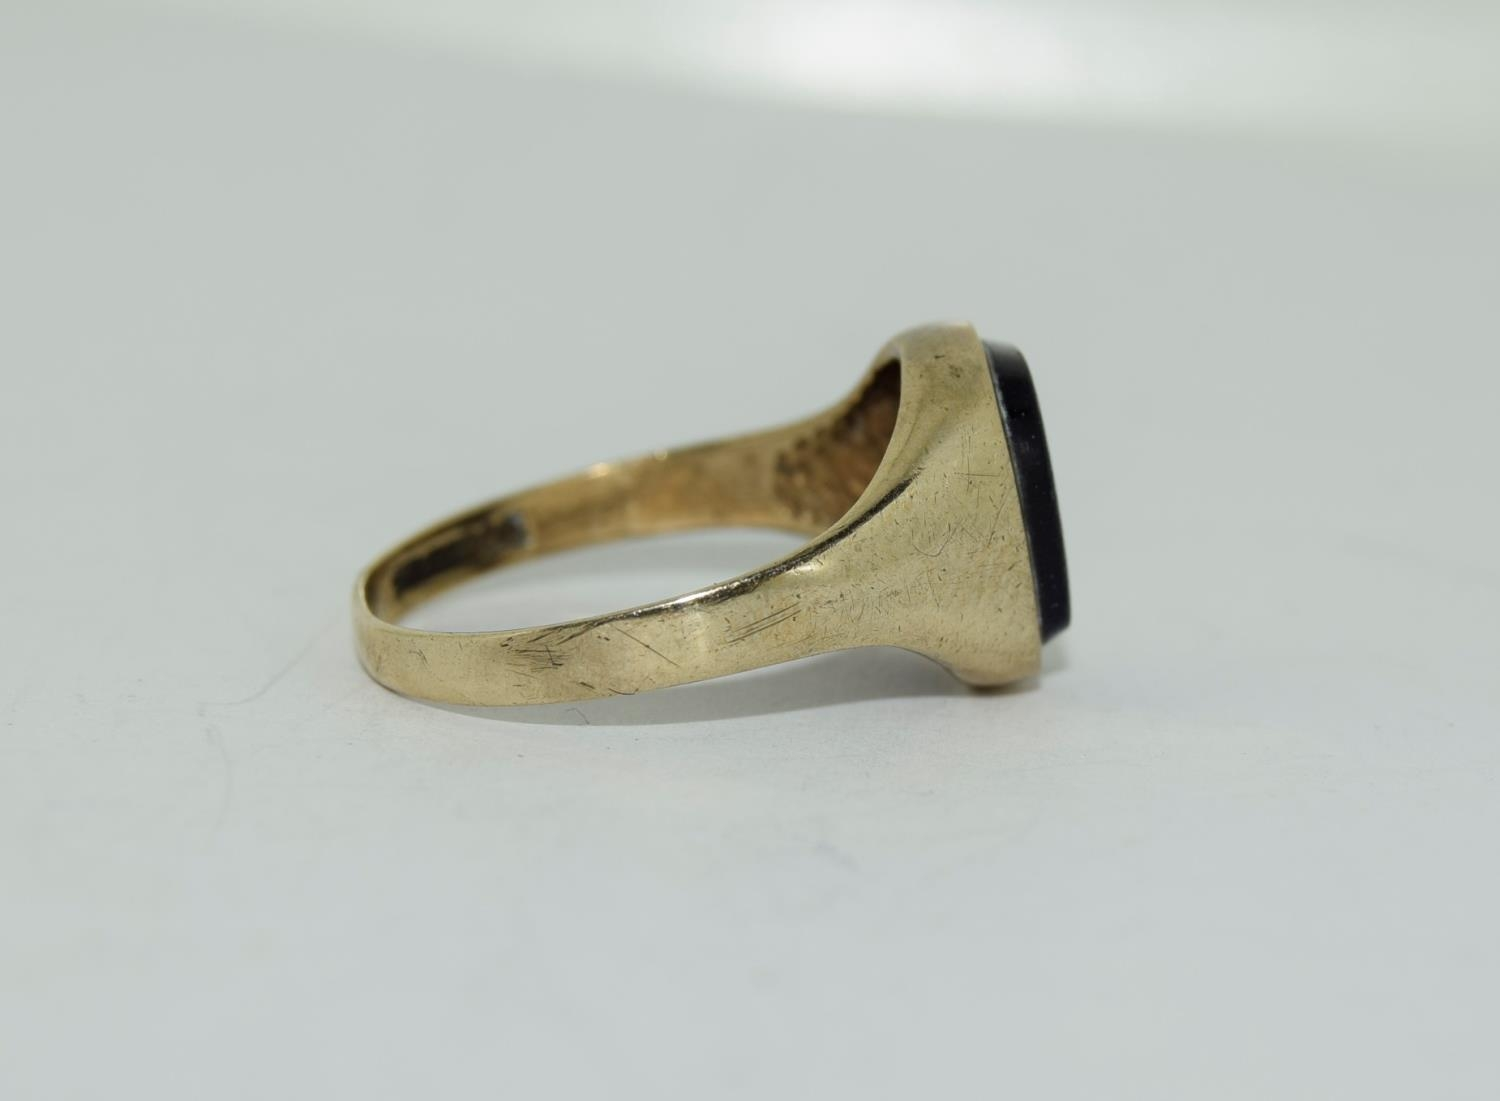 9ct gold gents sygnet ring set with unpolished amethyst centre stone size Q - Image 10 of 12